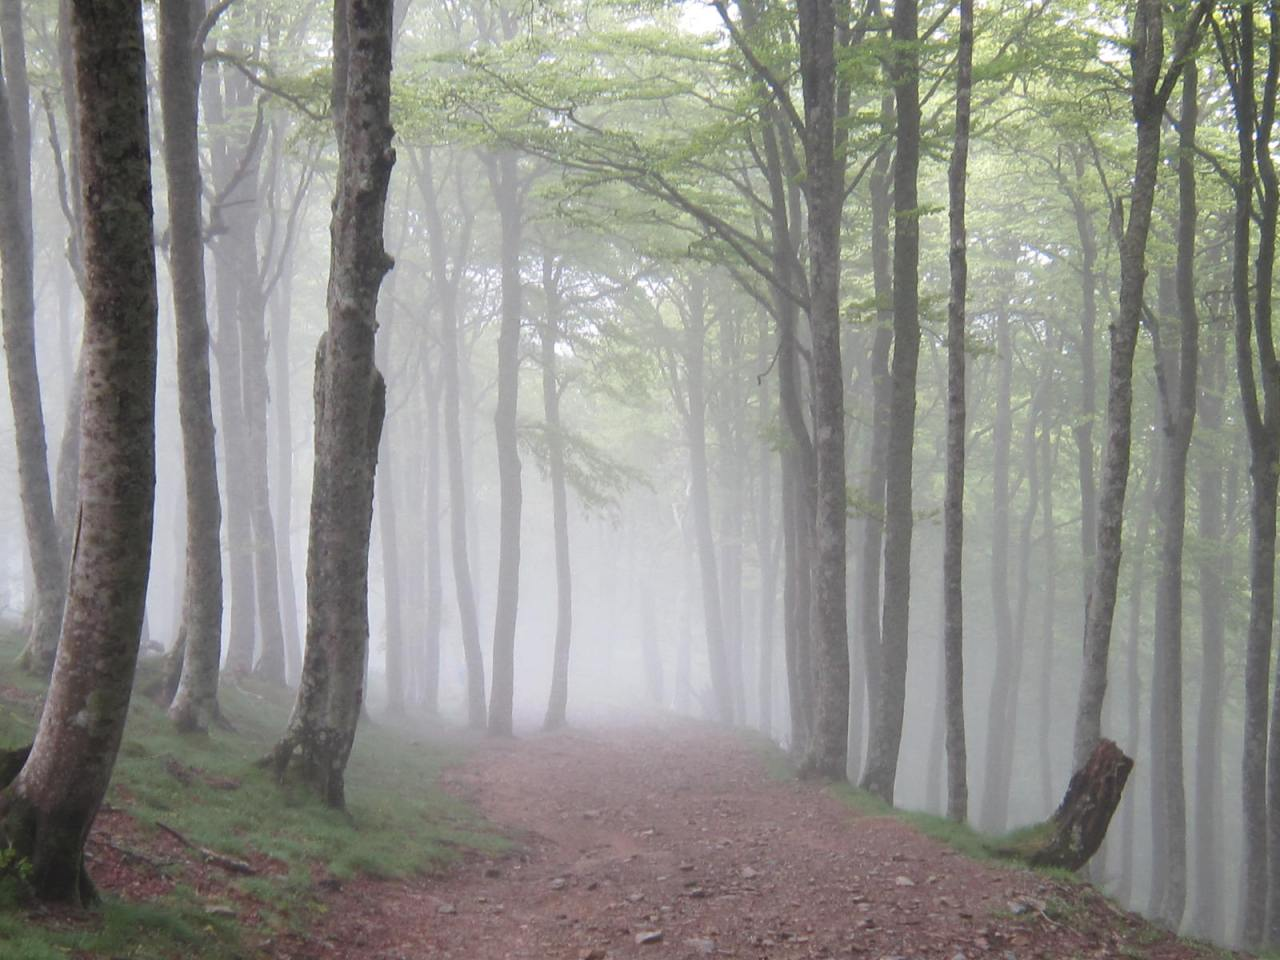 Walking through the enchanted forest in the Pyrenees between St. Jean Pied de Port andRoncesvalles